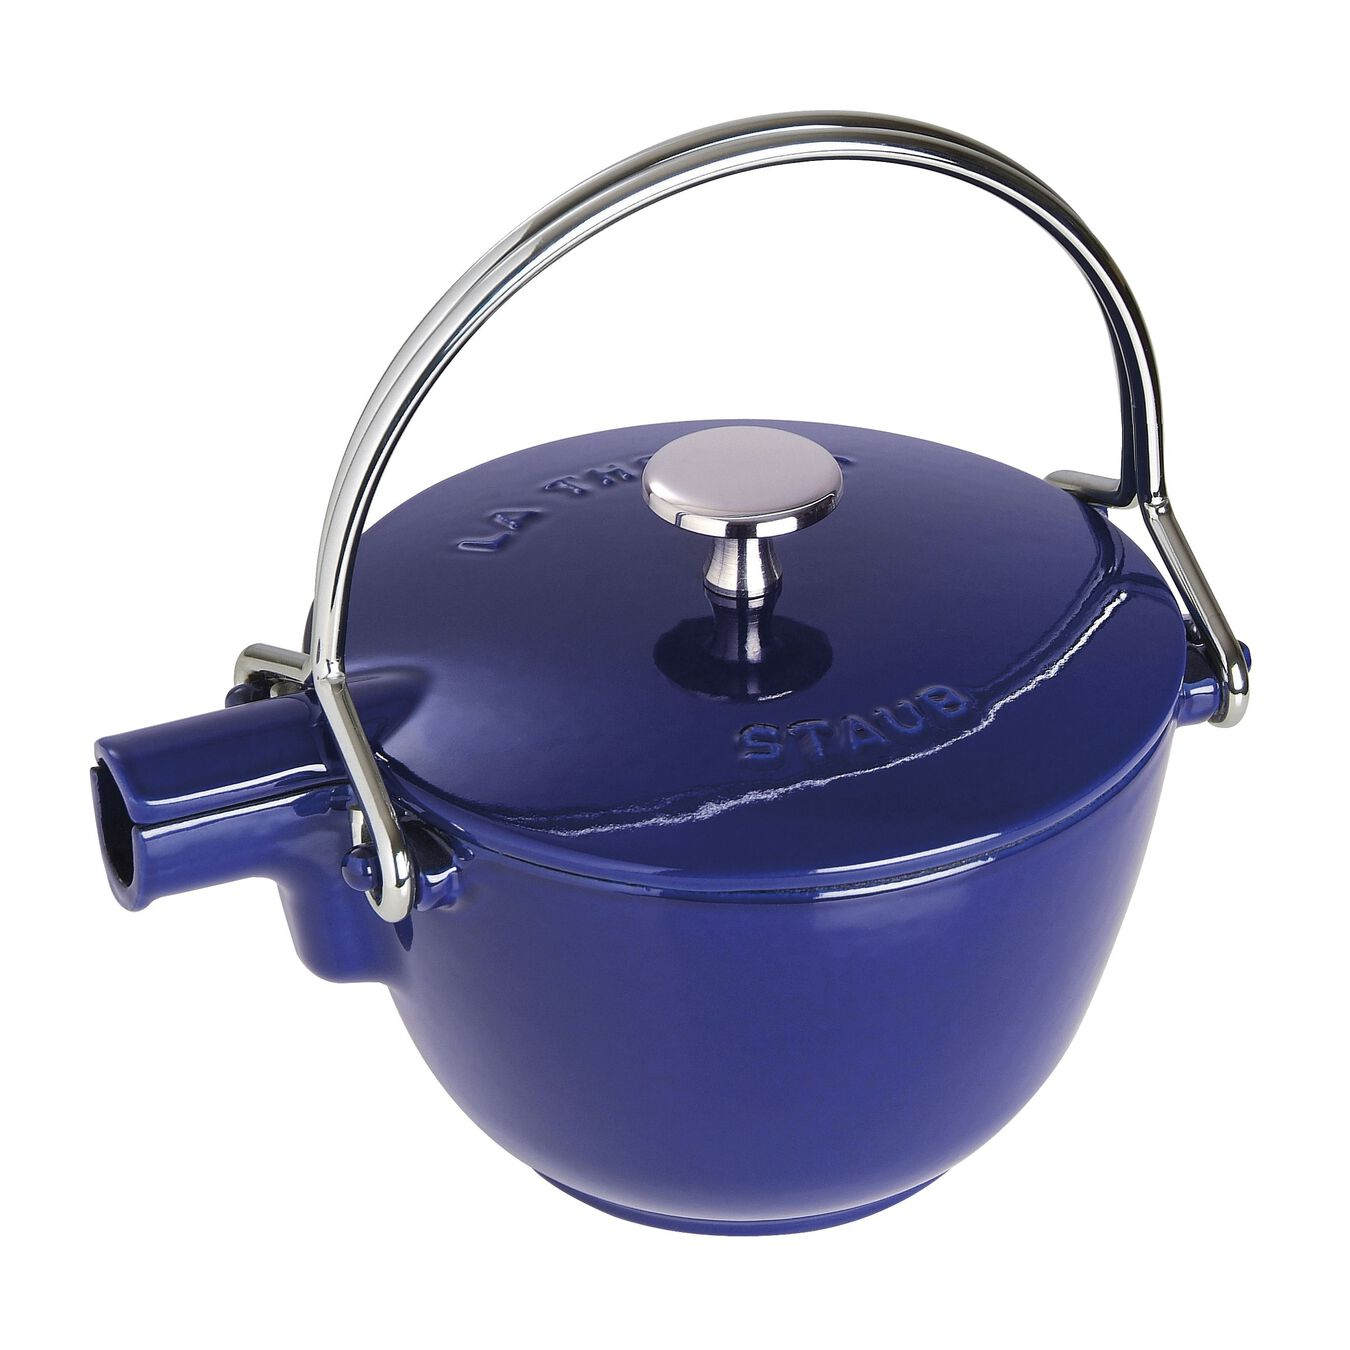 1,25 l Cast iron Théière, Dark-Blue,,large 1